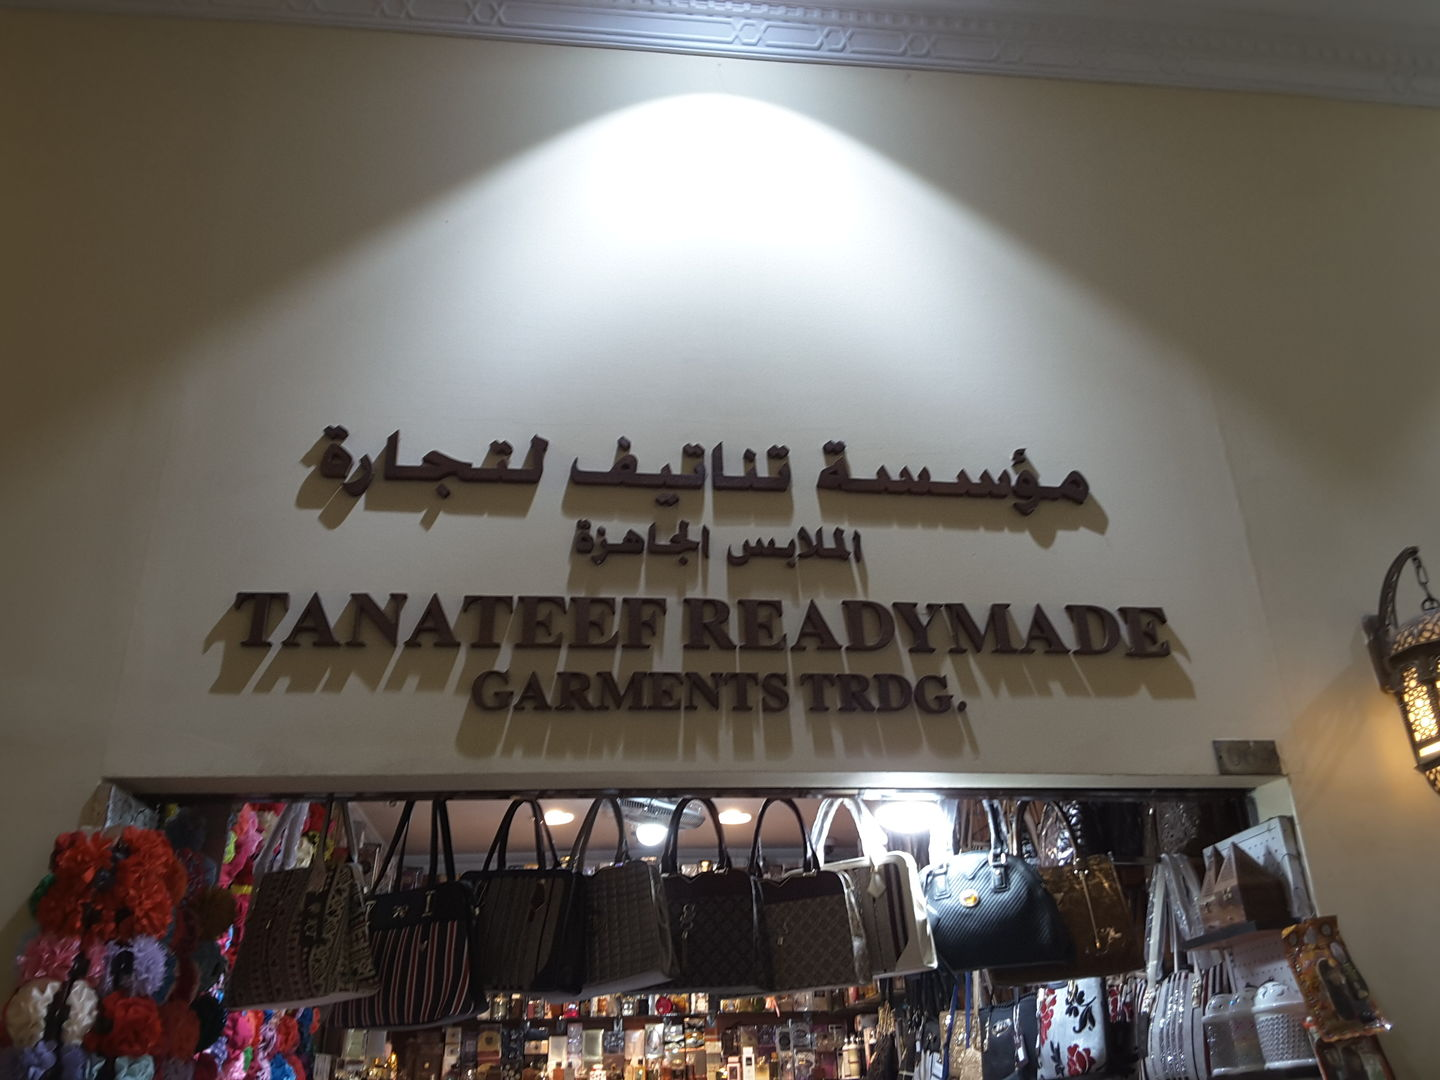 HiDubai-business-tanateef-readymade-garments-shopping-beauty-cosmetics-stores-naif-dubai-2